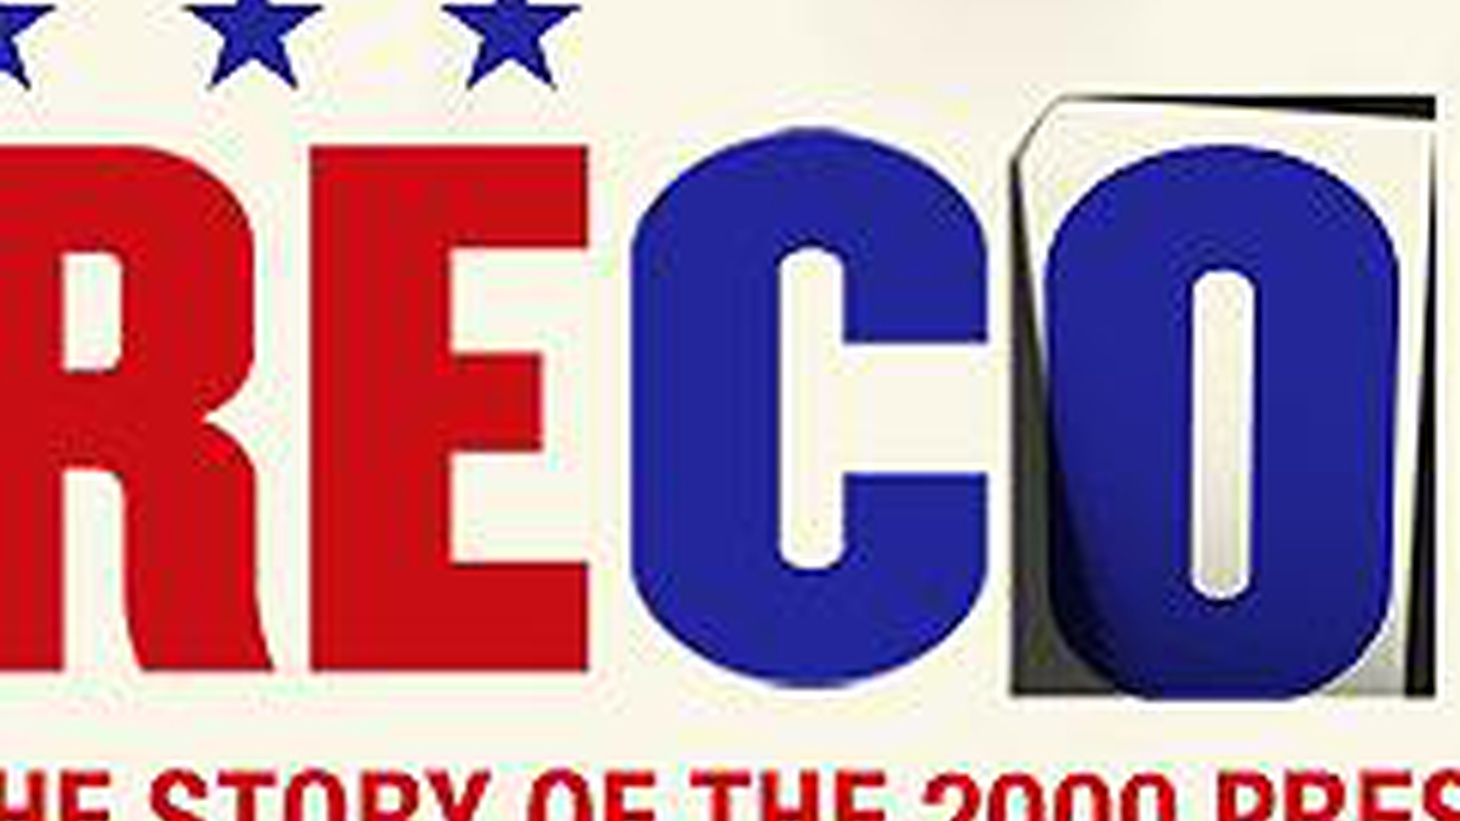 What's crazier than Austin Powers or Meet the Fockers? The 2000 presidential vote count, perhaps. It's the subject of Jay Roach's new film, Recount. Count yourself in when Elvis Mitchell speaks with Roach.